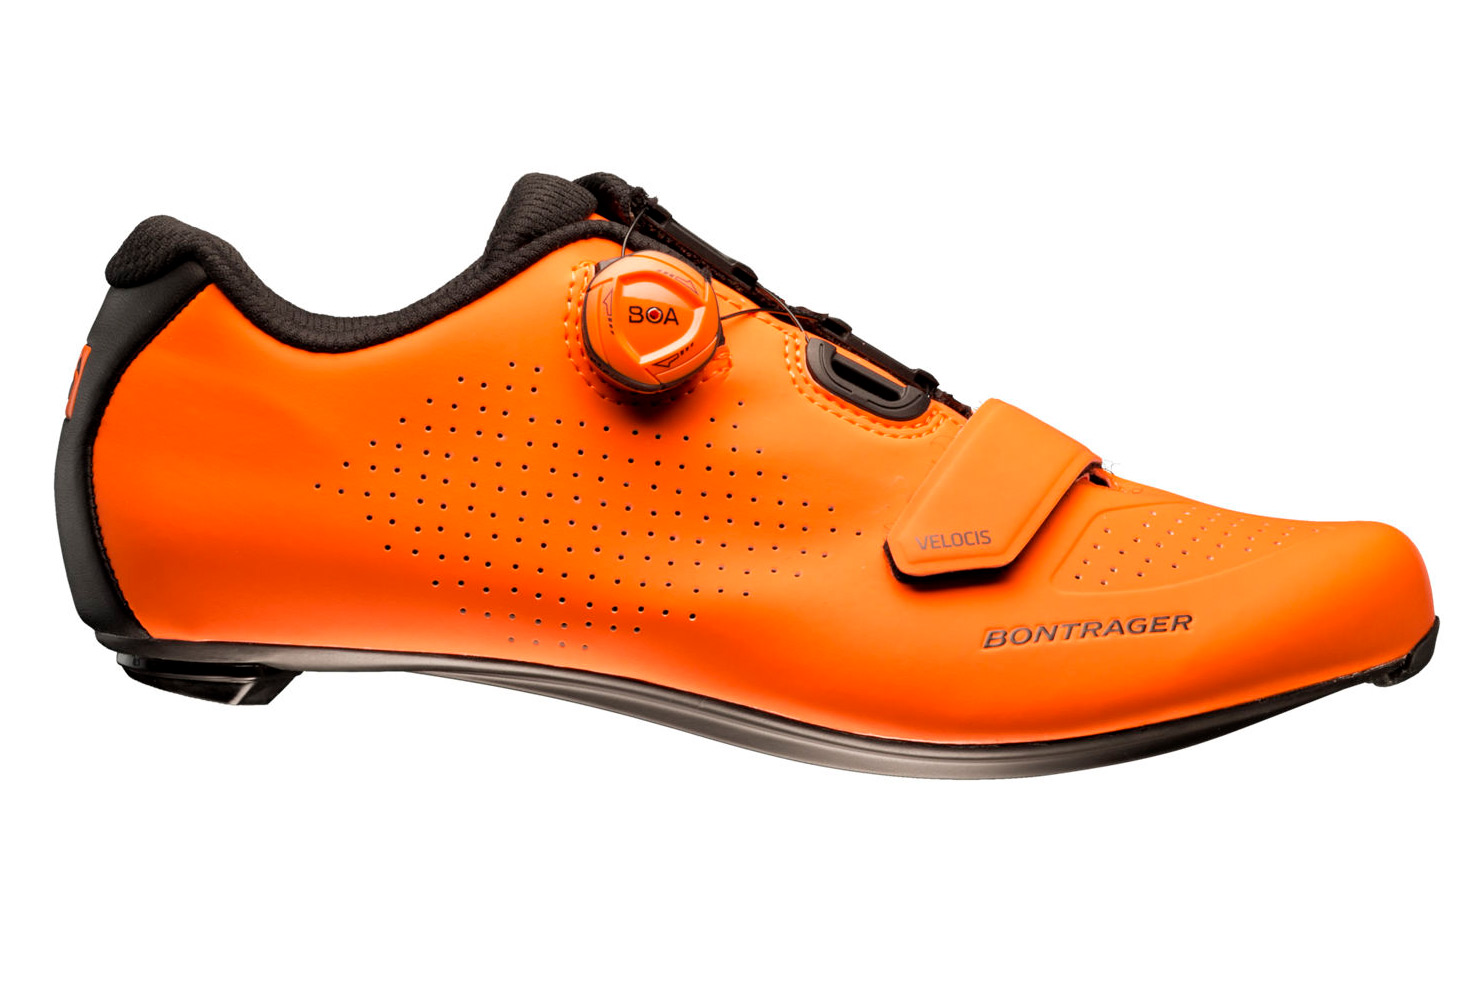 Velocis Road Bontrager Radioactive Orange Shoes YqXfw